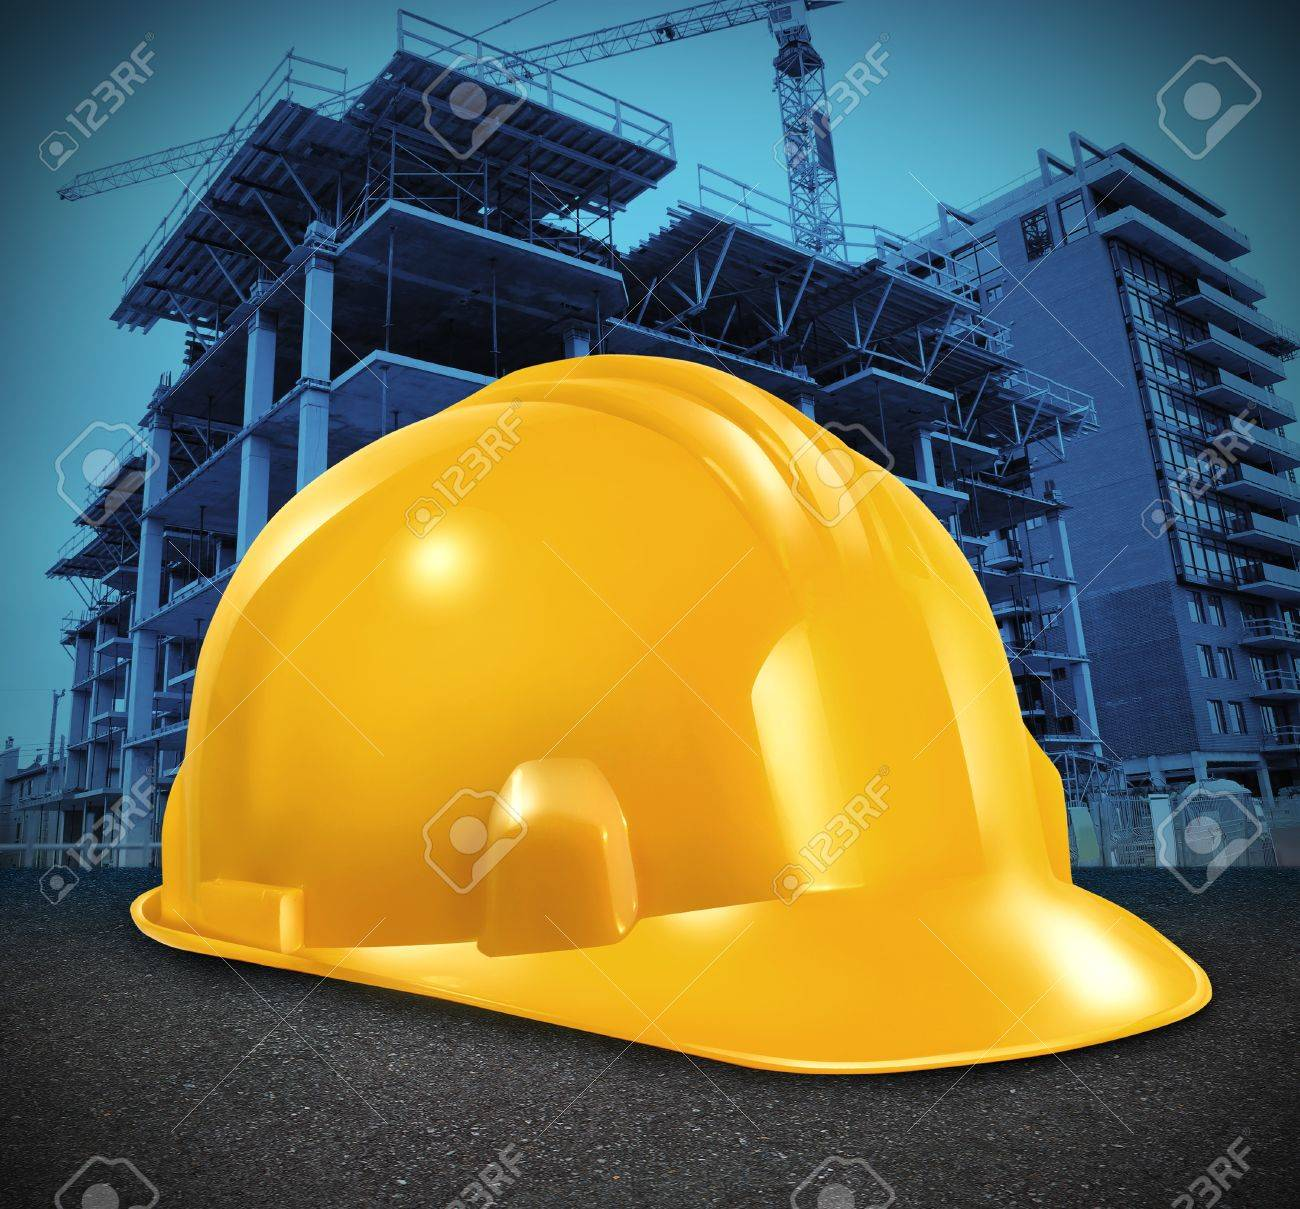 Construction industry and commercial real estate business investment with a yellow builder hard hat and a high rise structure being built as a symbol of economic and financial growth and healthy economy Stock Photo - 16920771